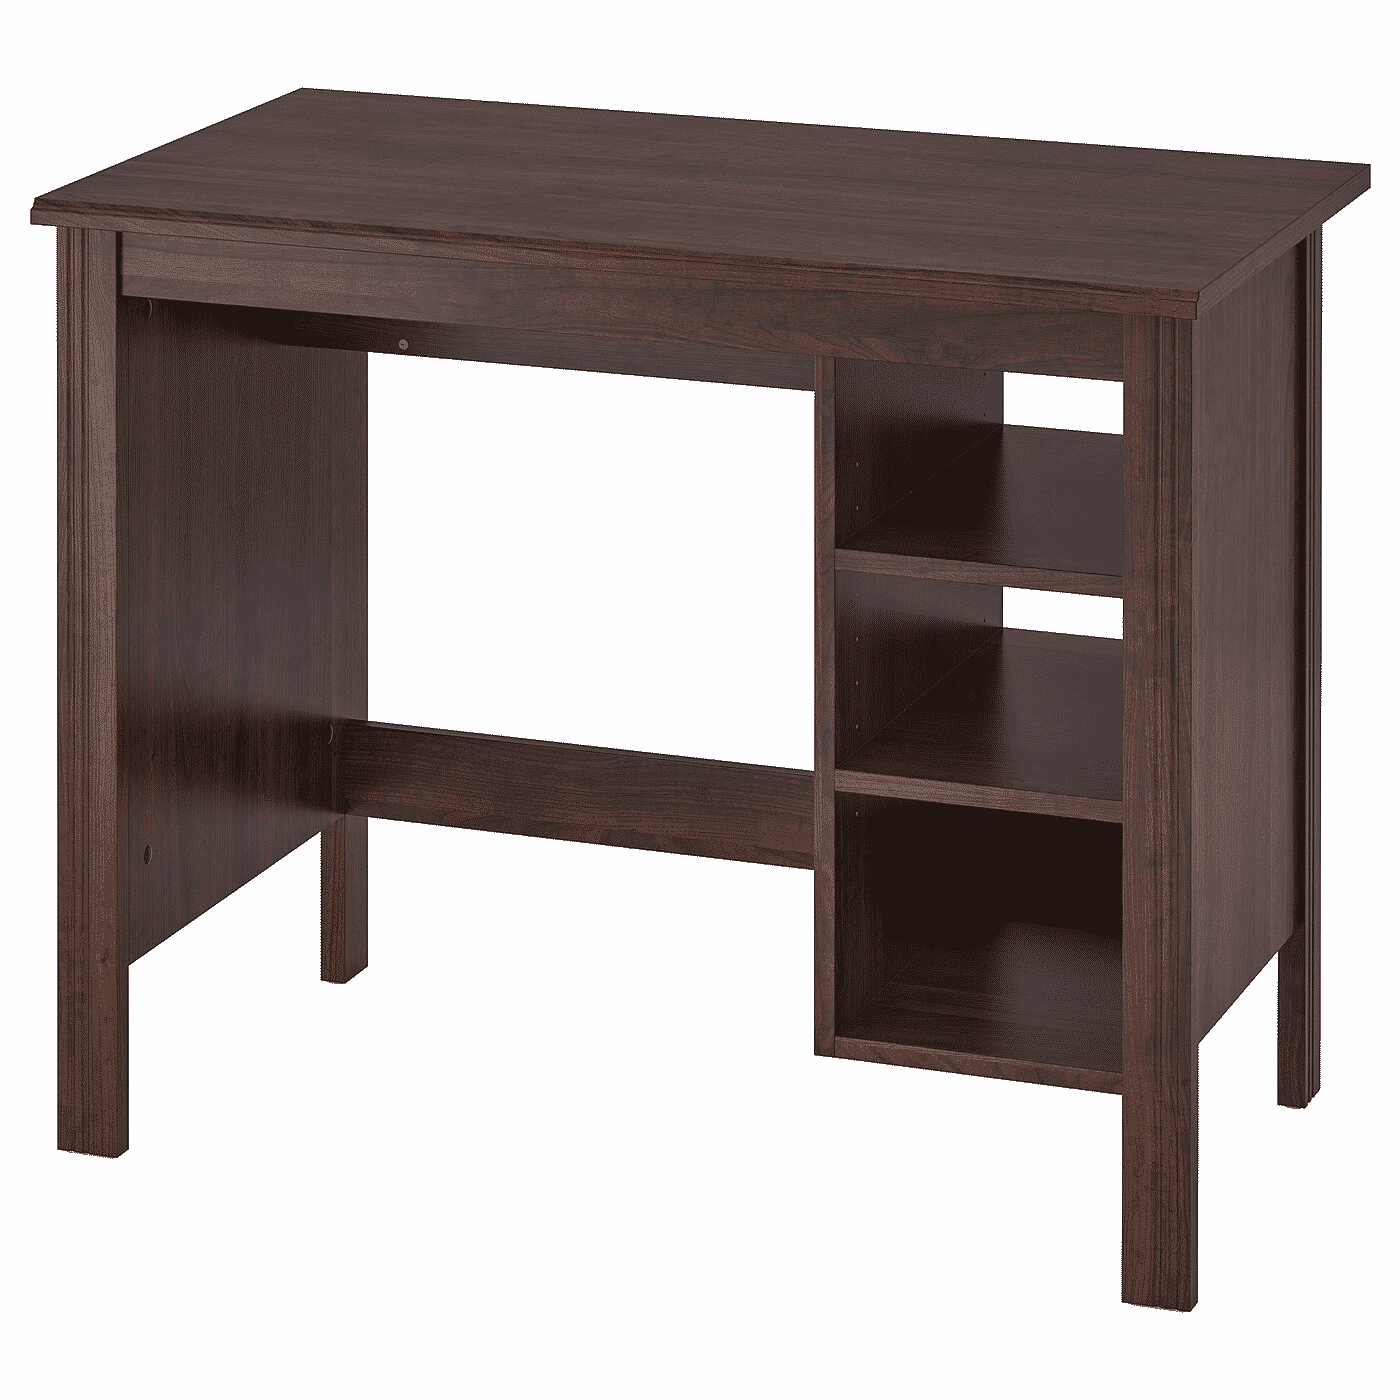 BRUSALI Desk, brown